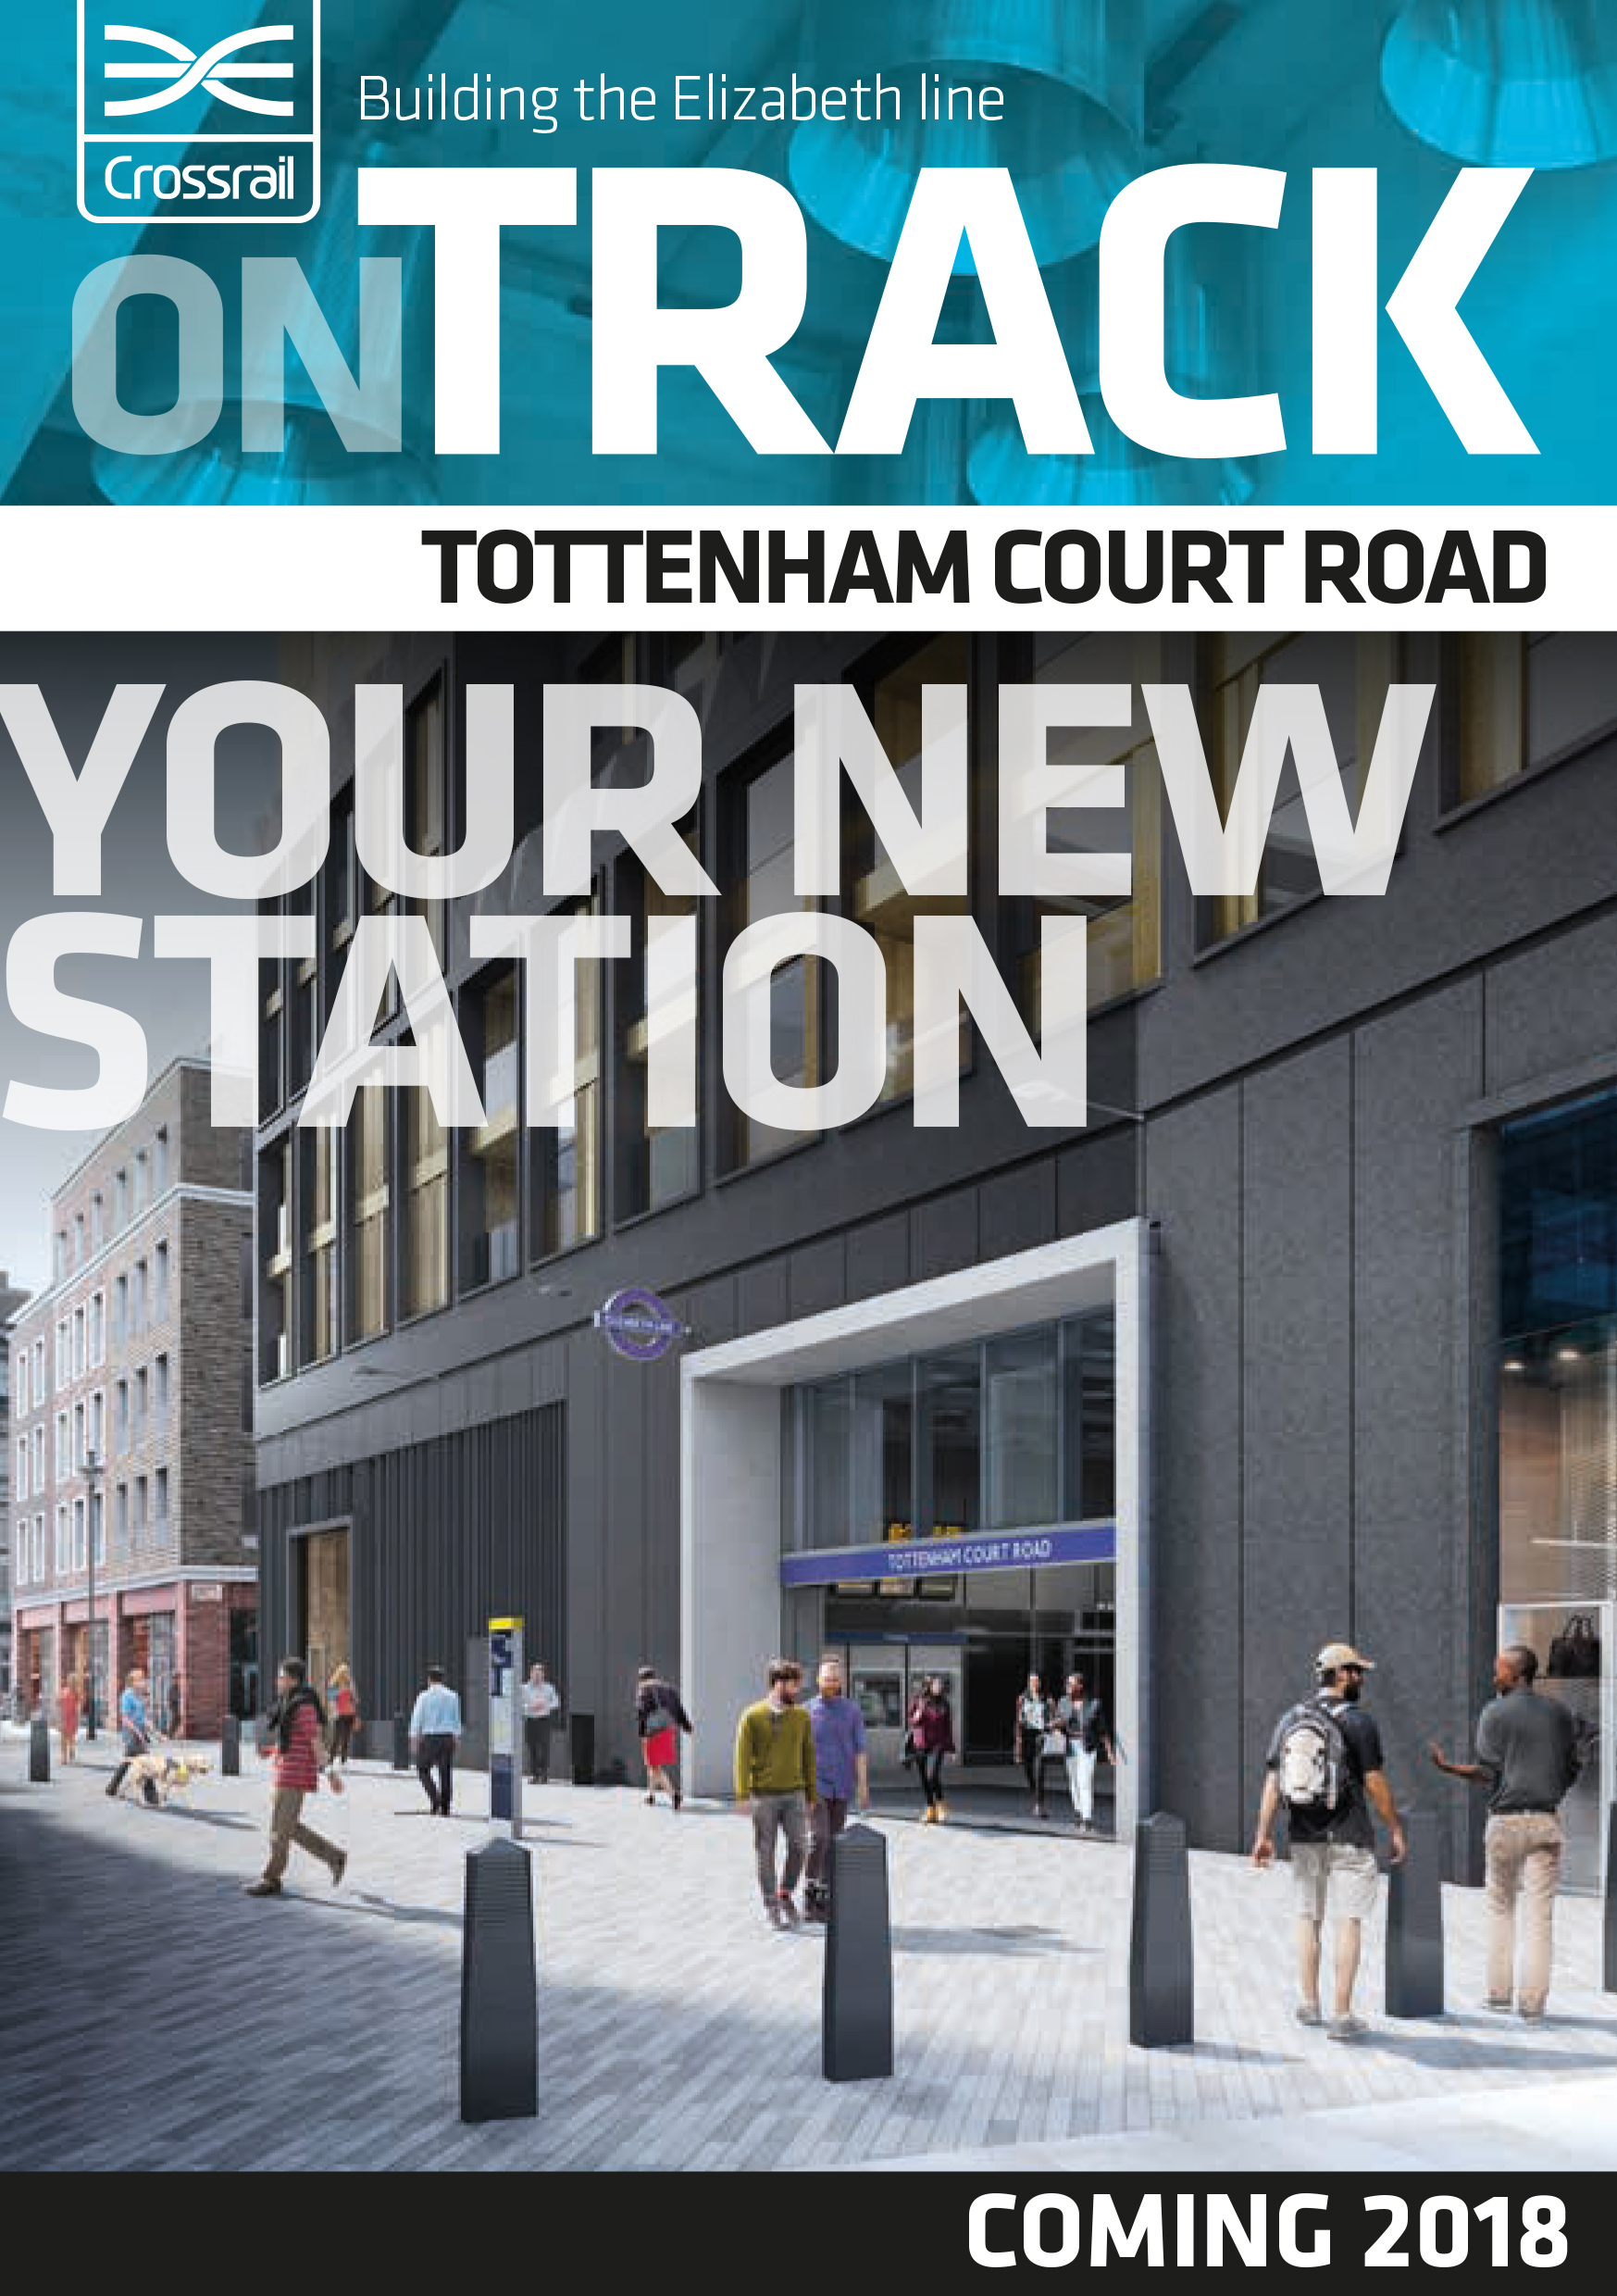 OnTrack - Tottenham Court Road